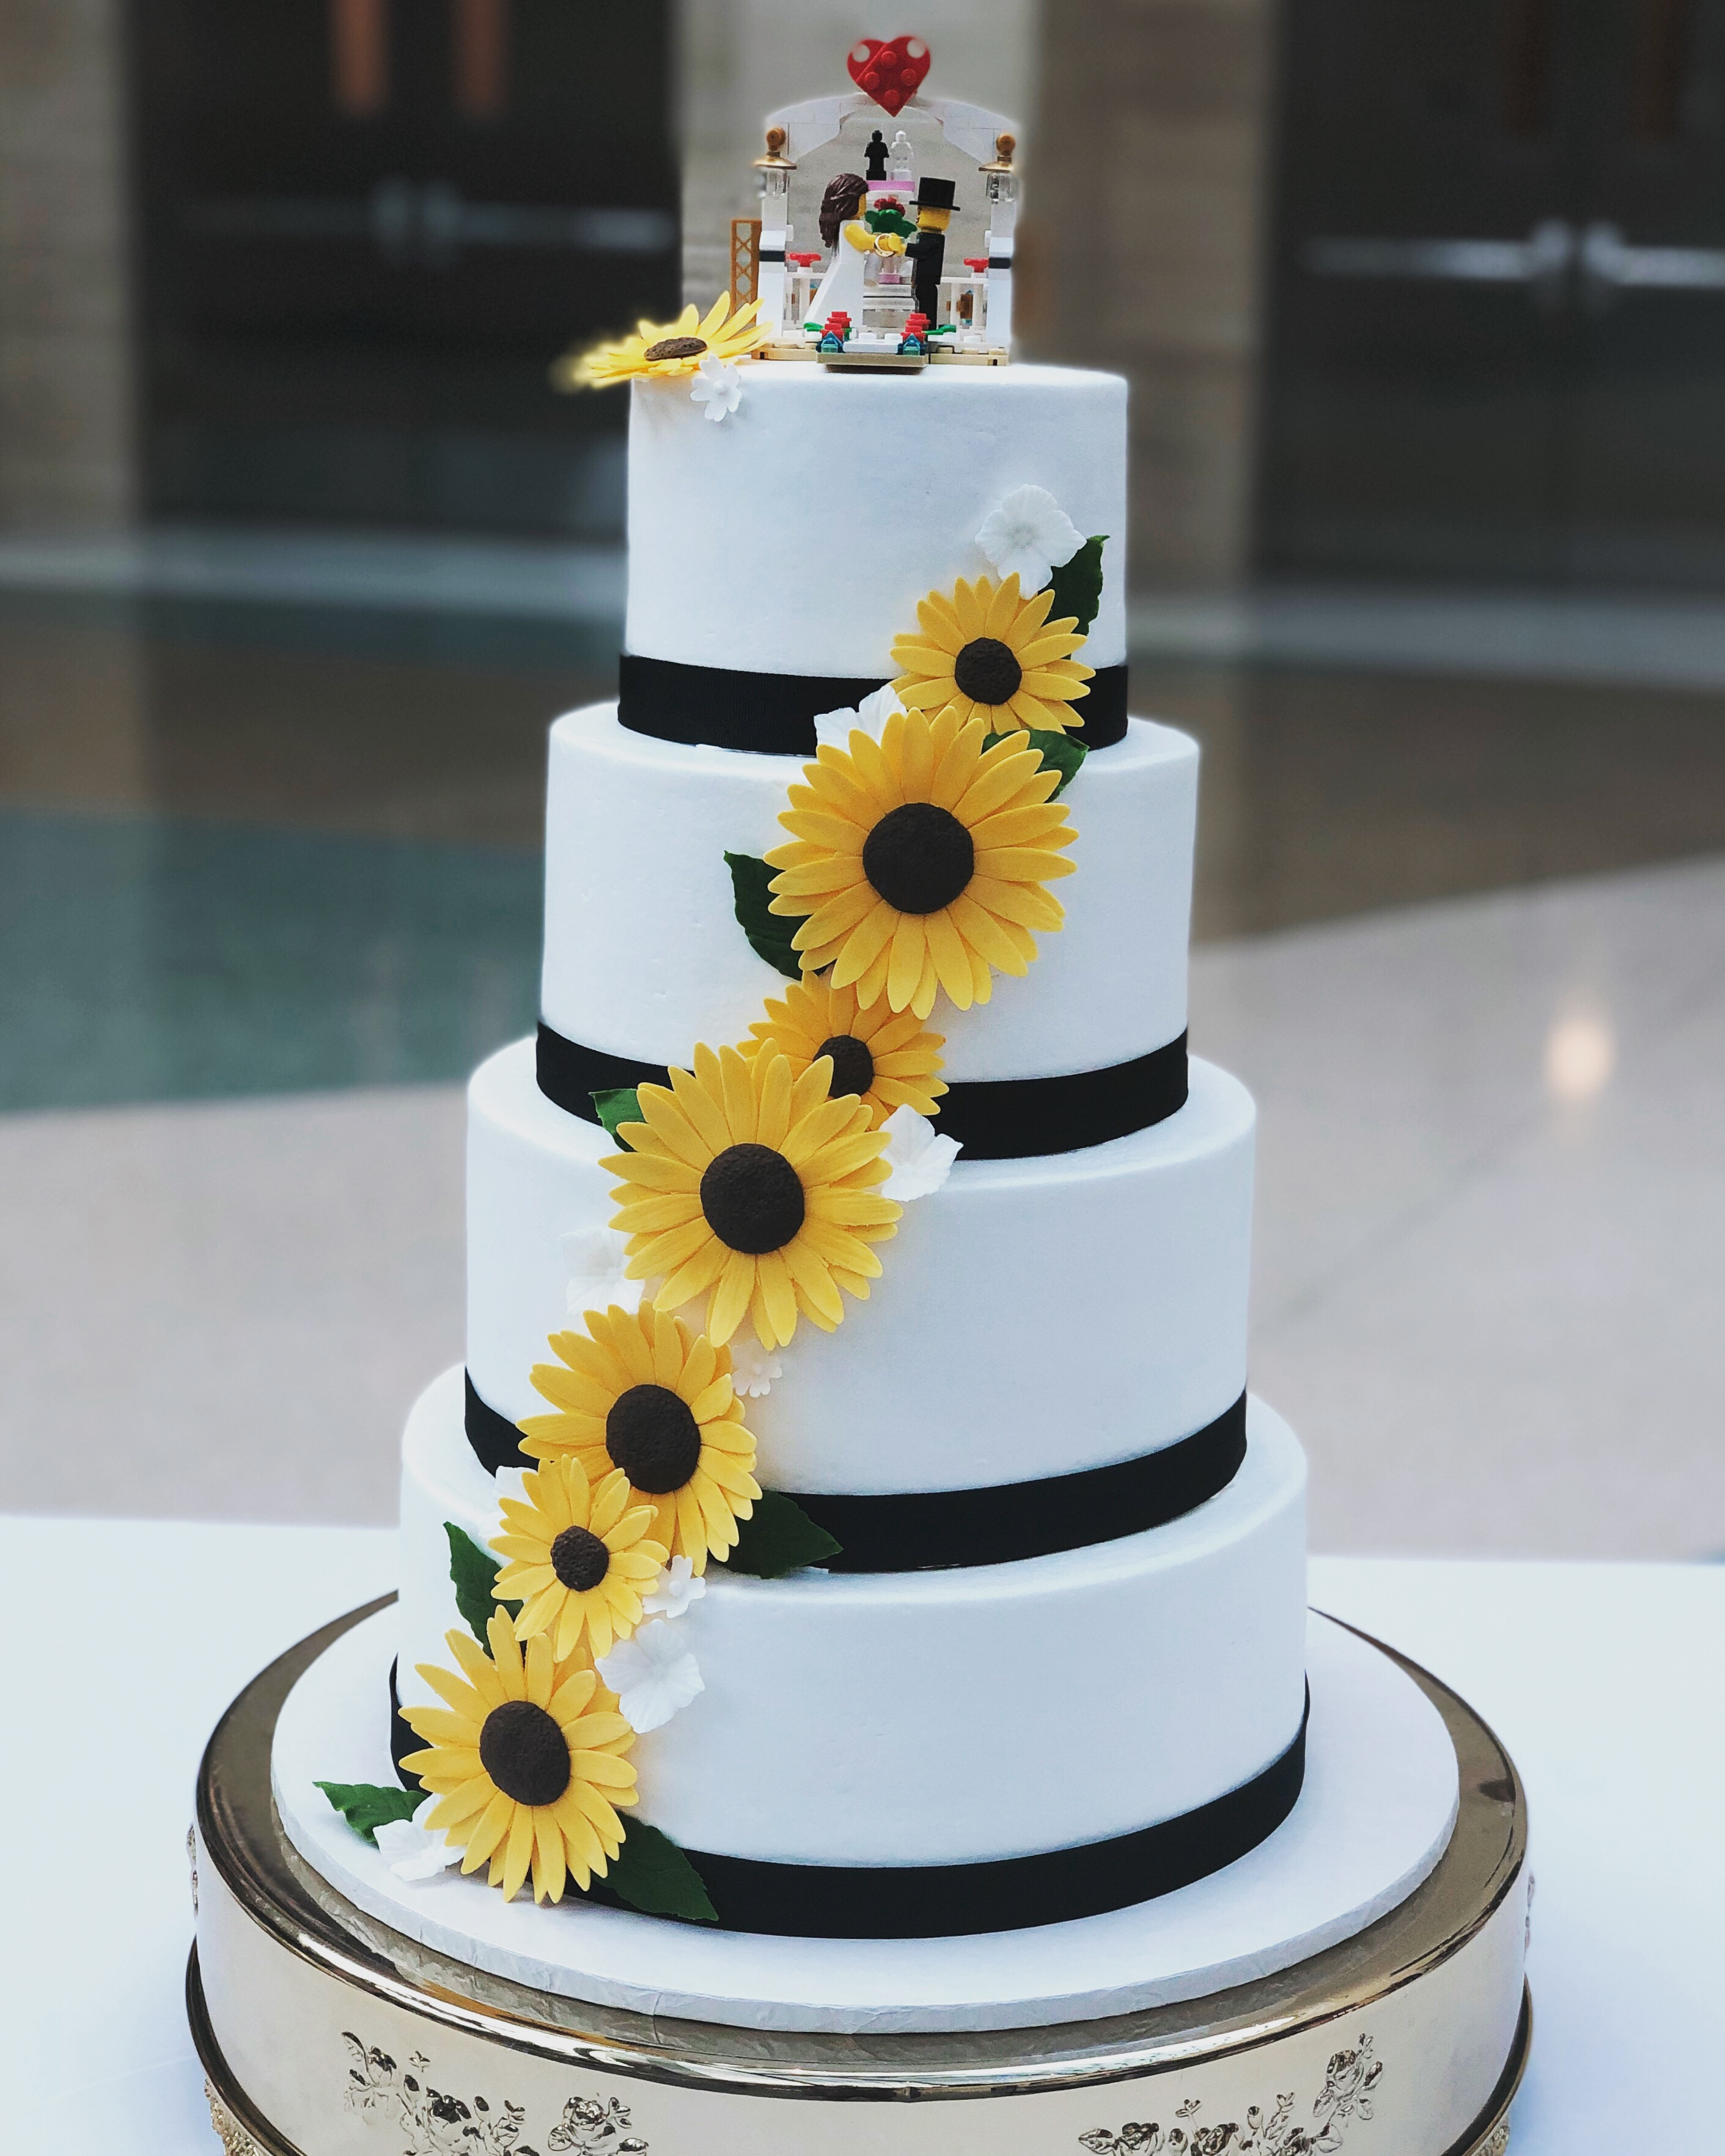 Buttercream and sugar sunflowers